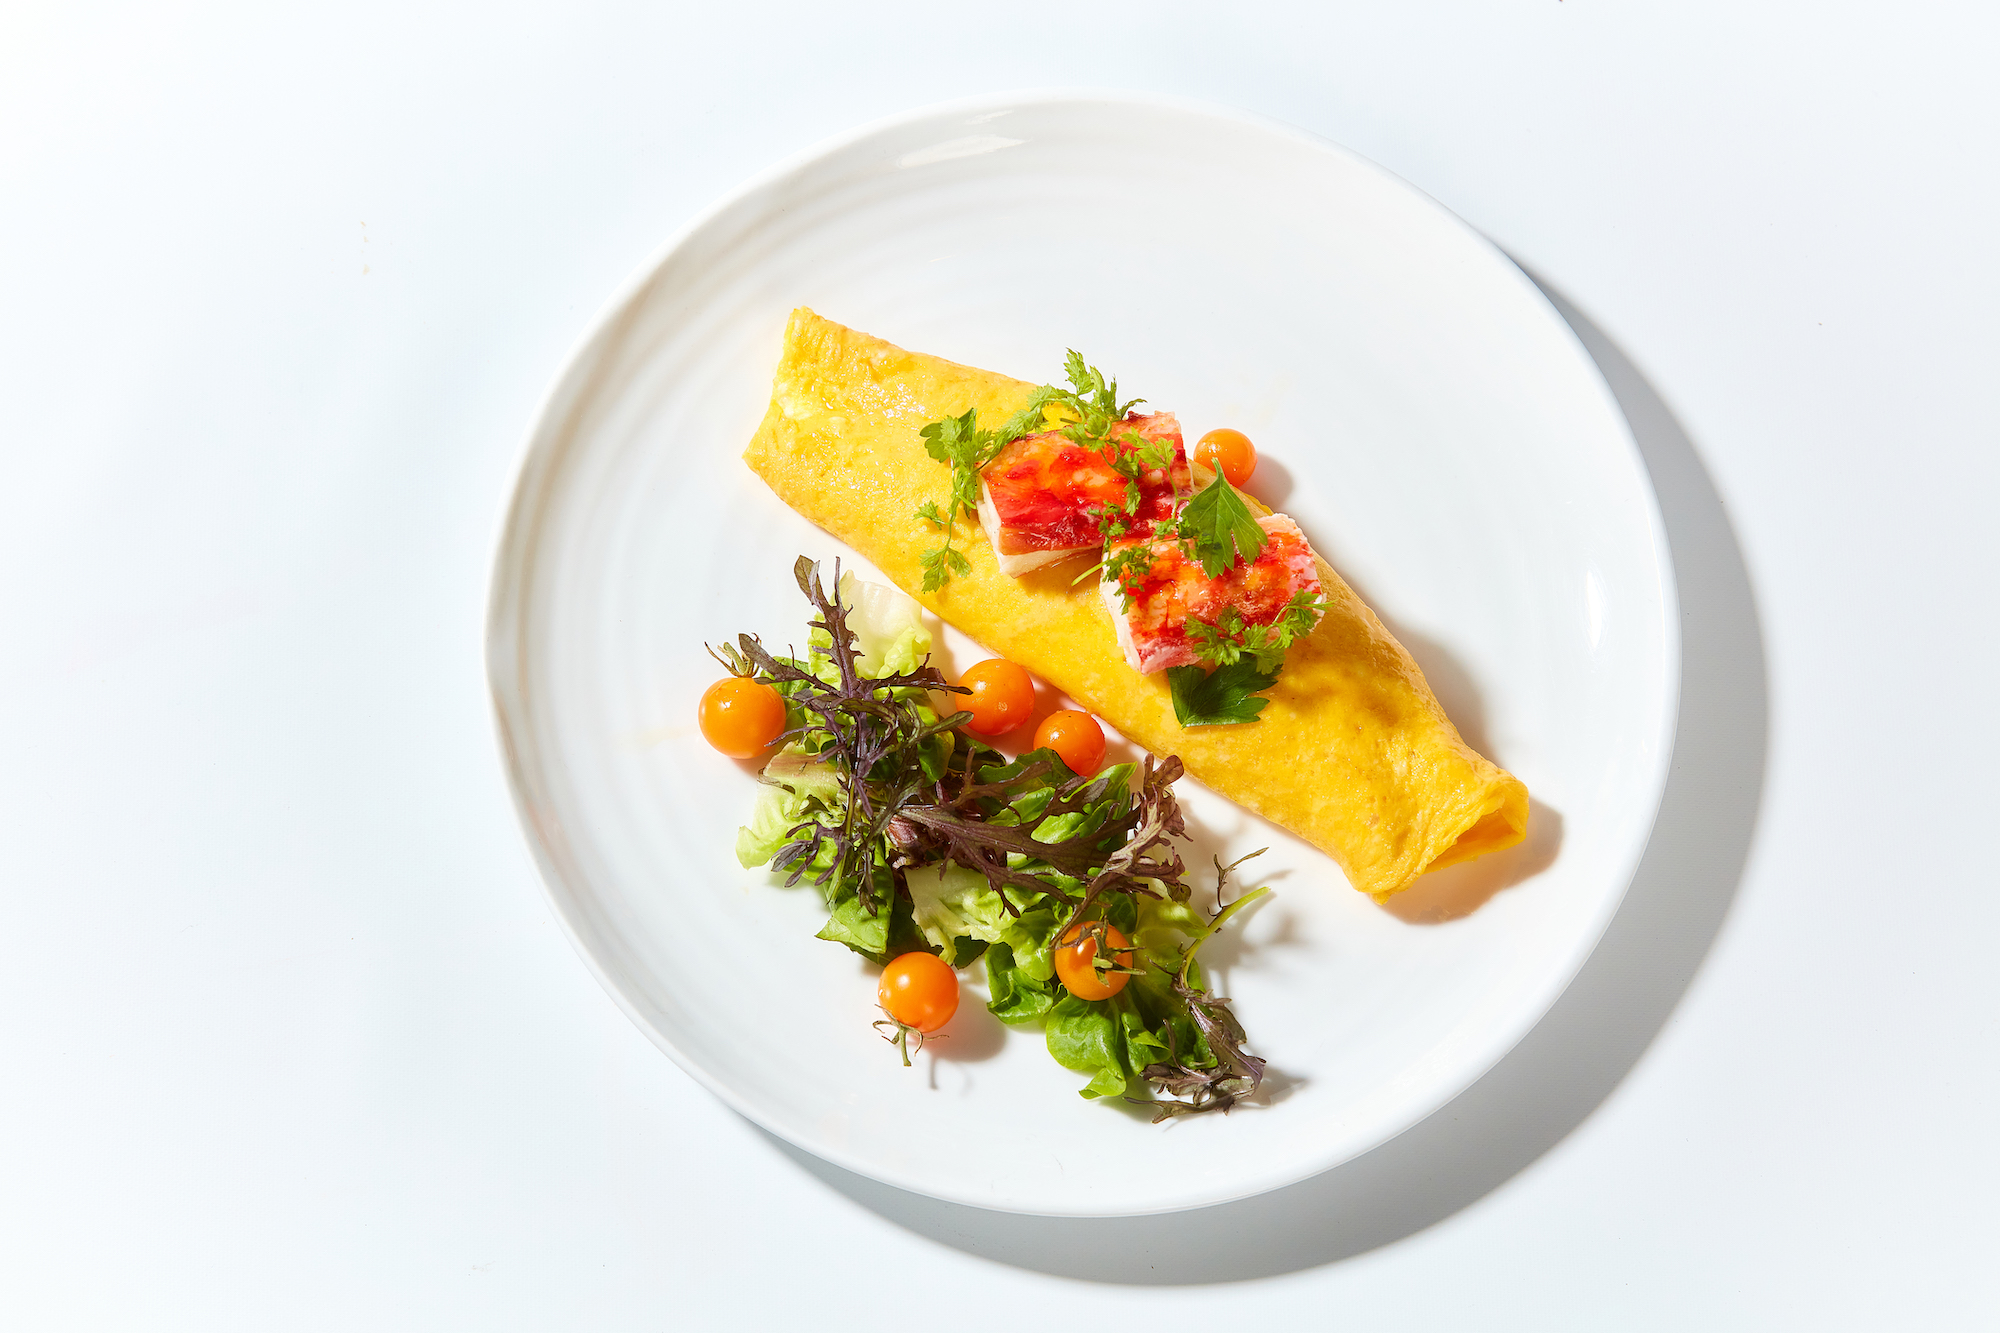 An omelet with a salad on a white plate